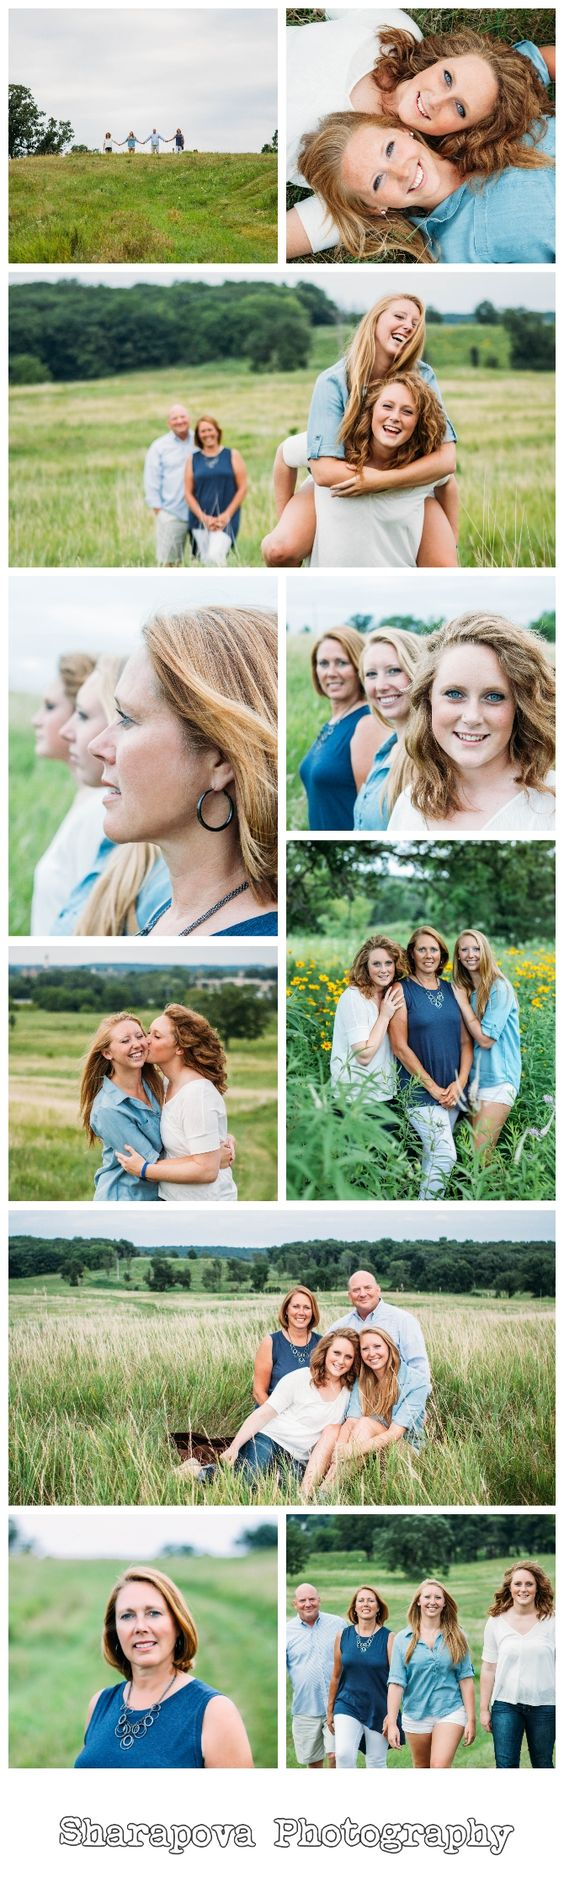 """""""Wandering The Wisconsin Prairie"""" - Natural light outdoor family pictures, parents with their college kids by Sharapova Photography"""